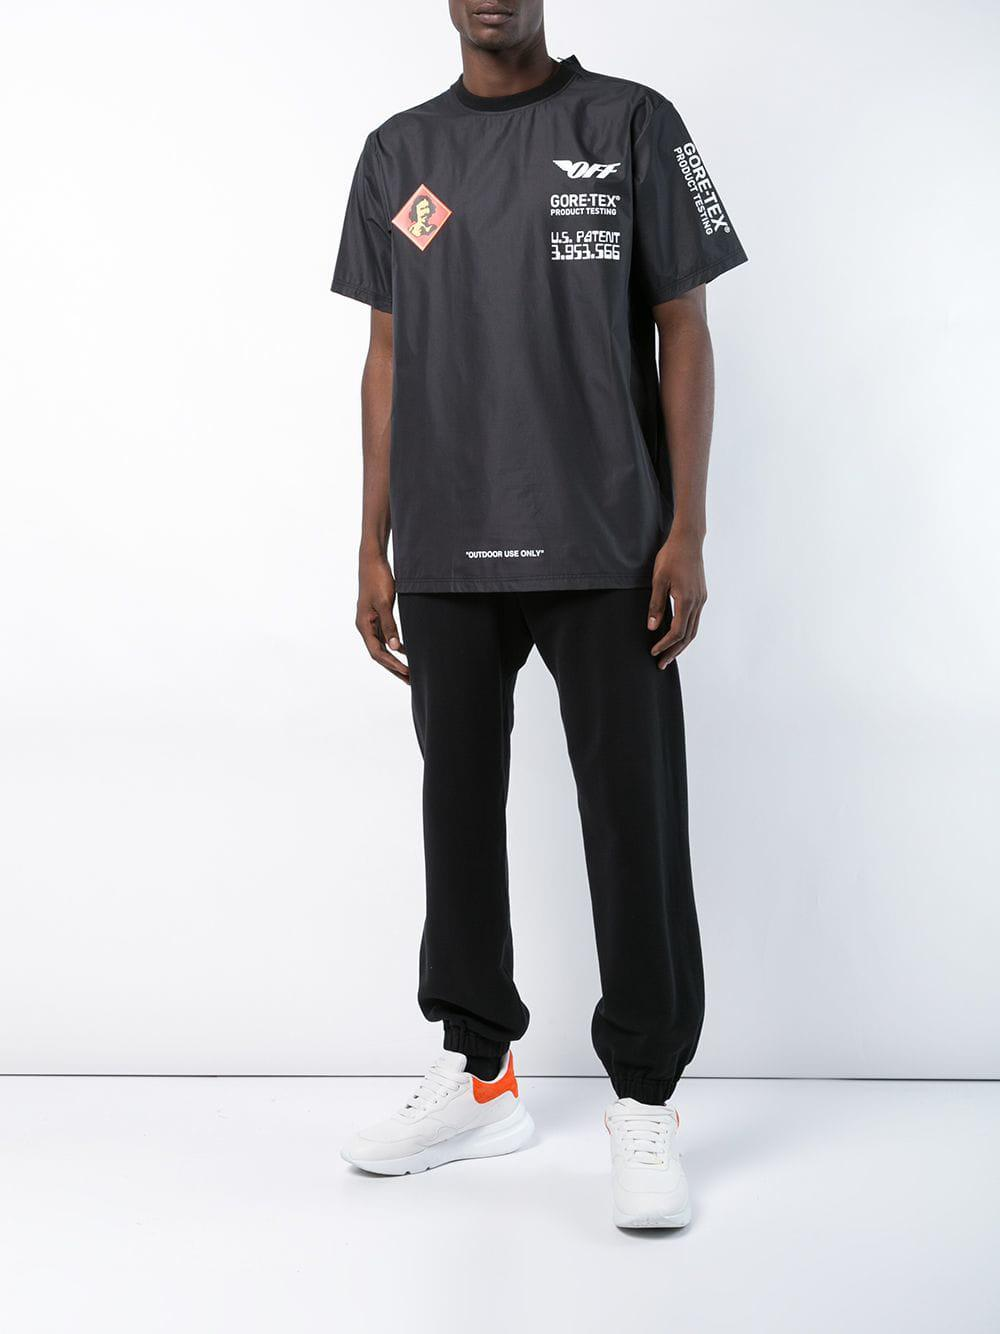 5e70721c4b8b Off-White c o Virgil Abloh Outdoor Use Only T-shirt in Black for Men - Save  36% - Lyst